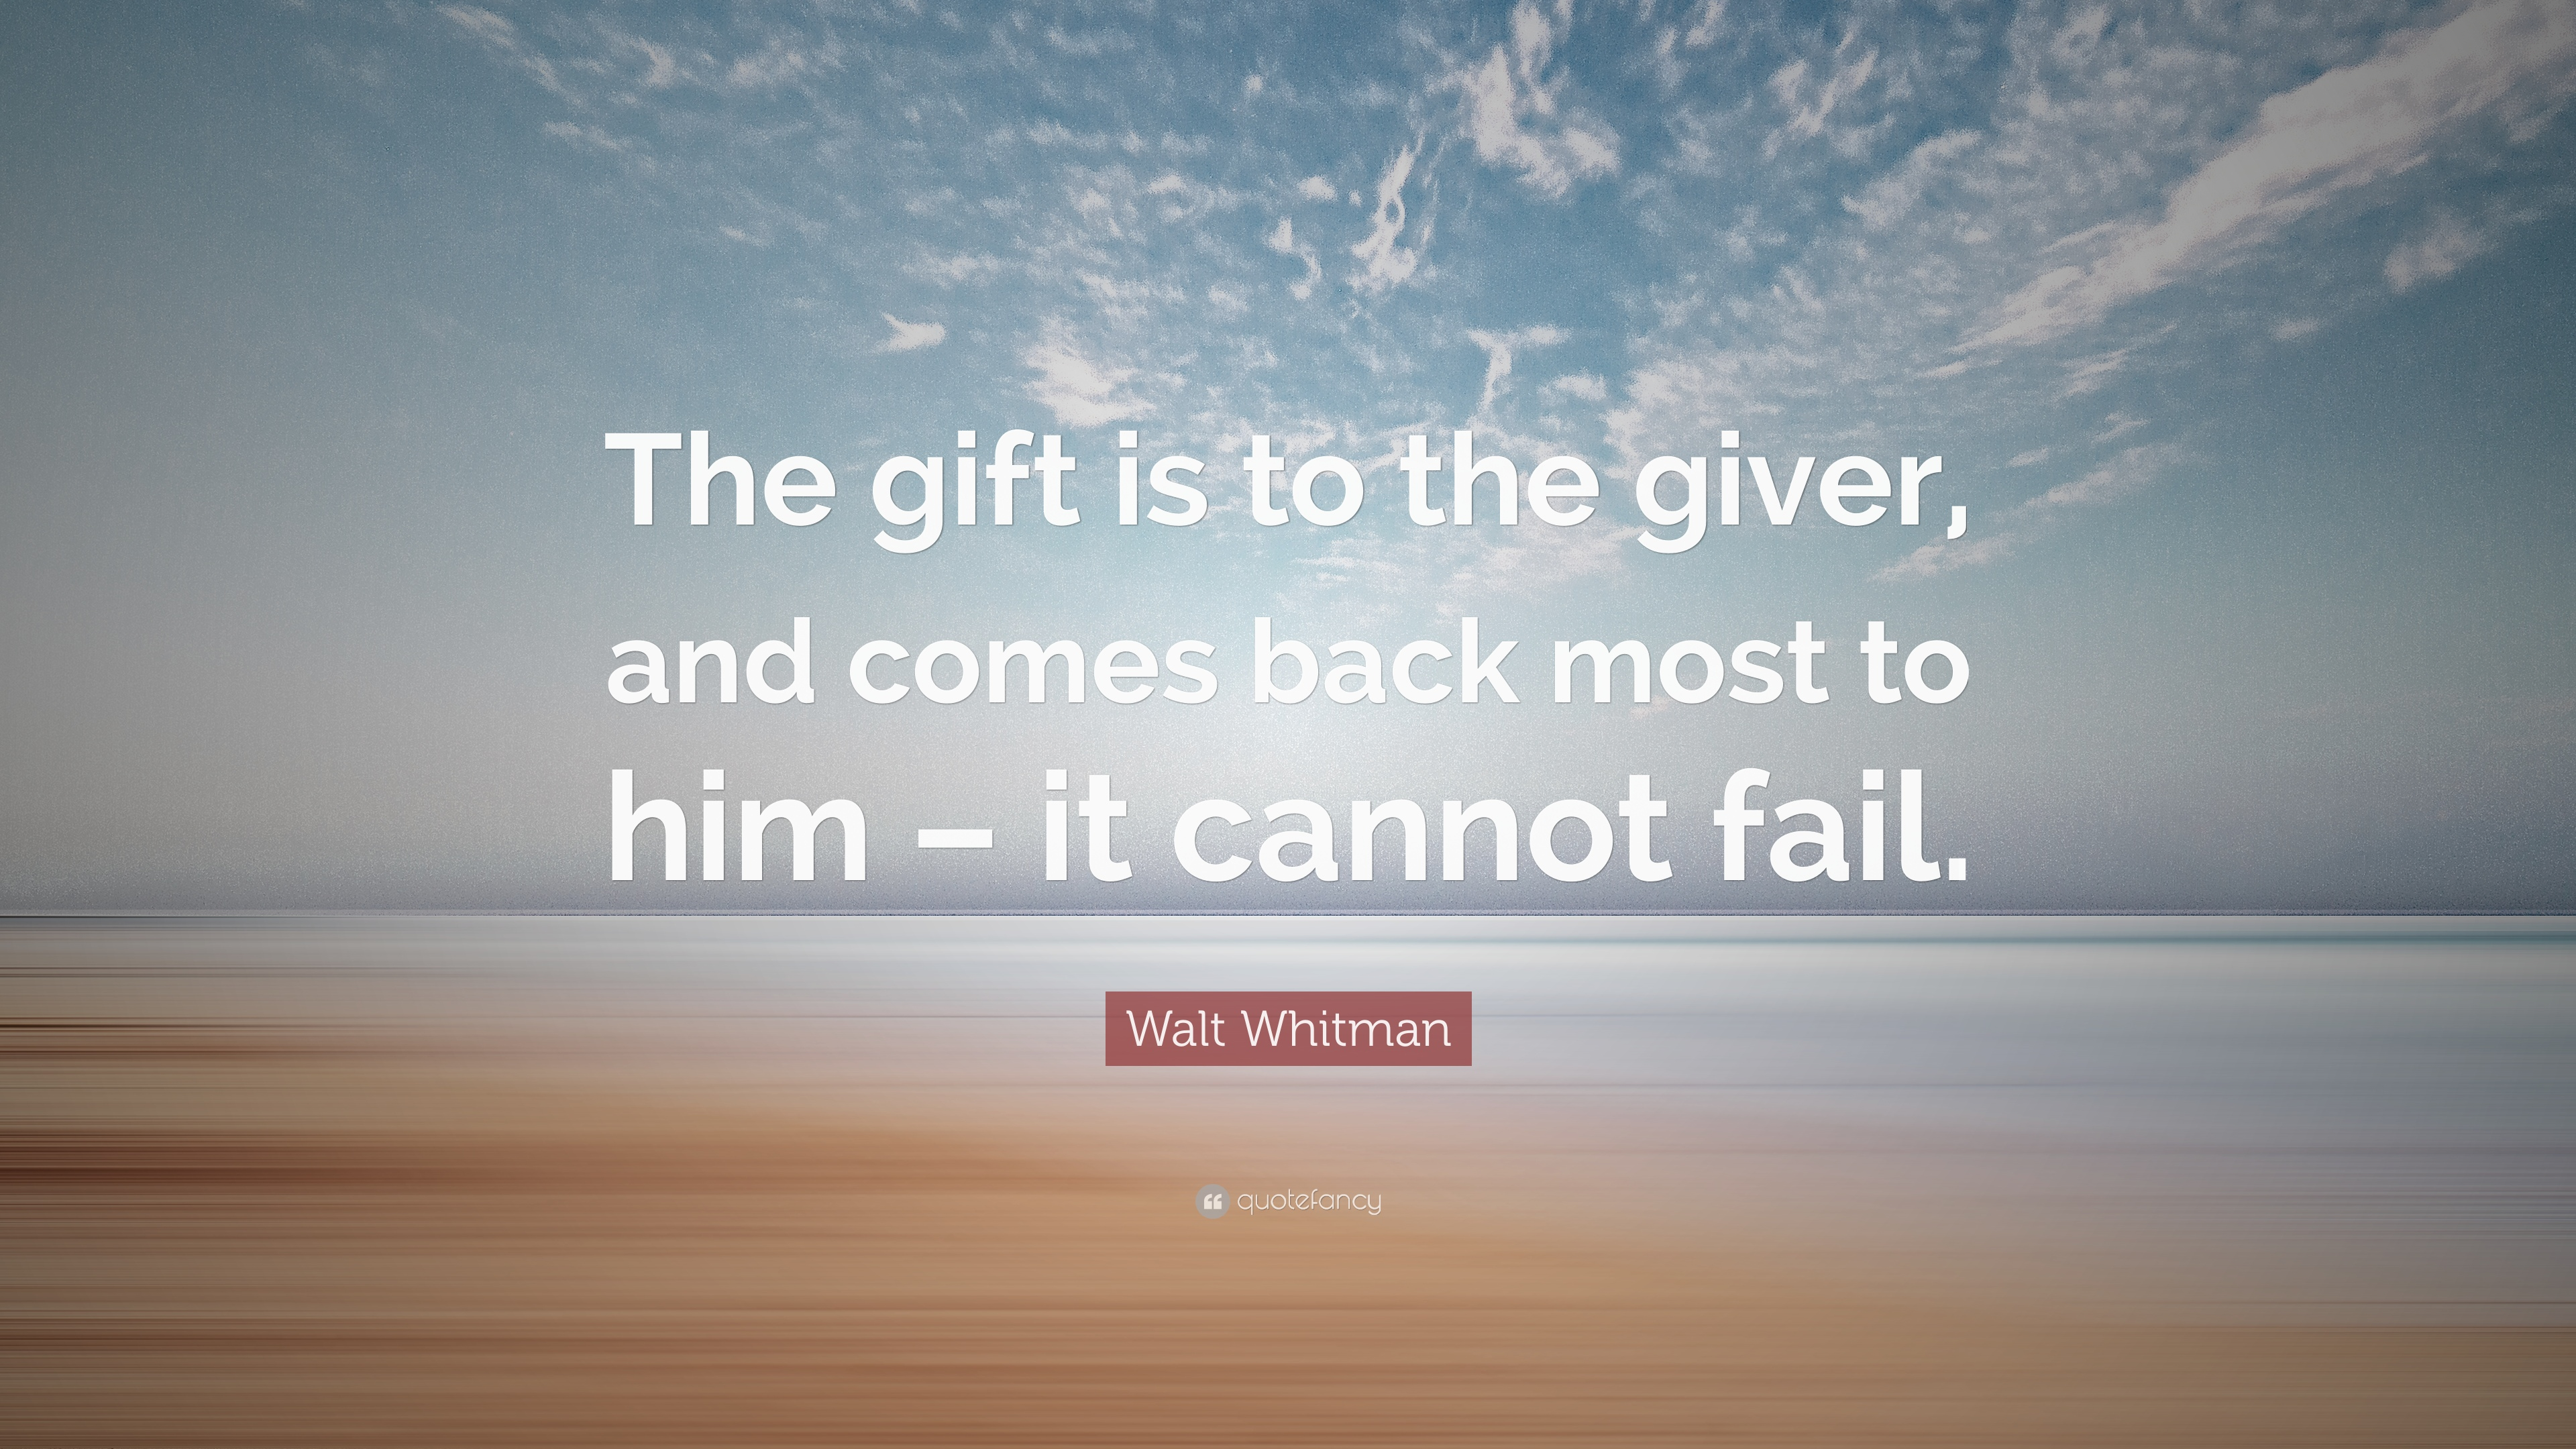 Walt whitman quote the gift is to the giver and comes back most